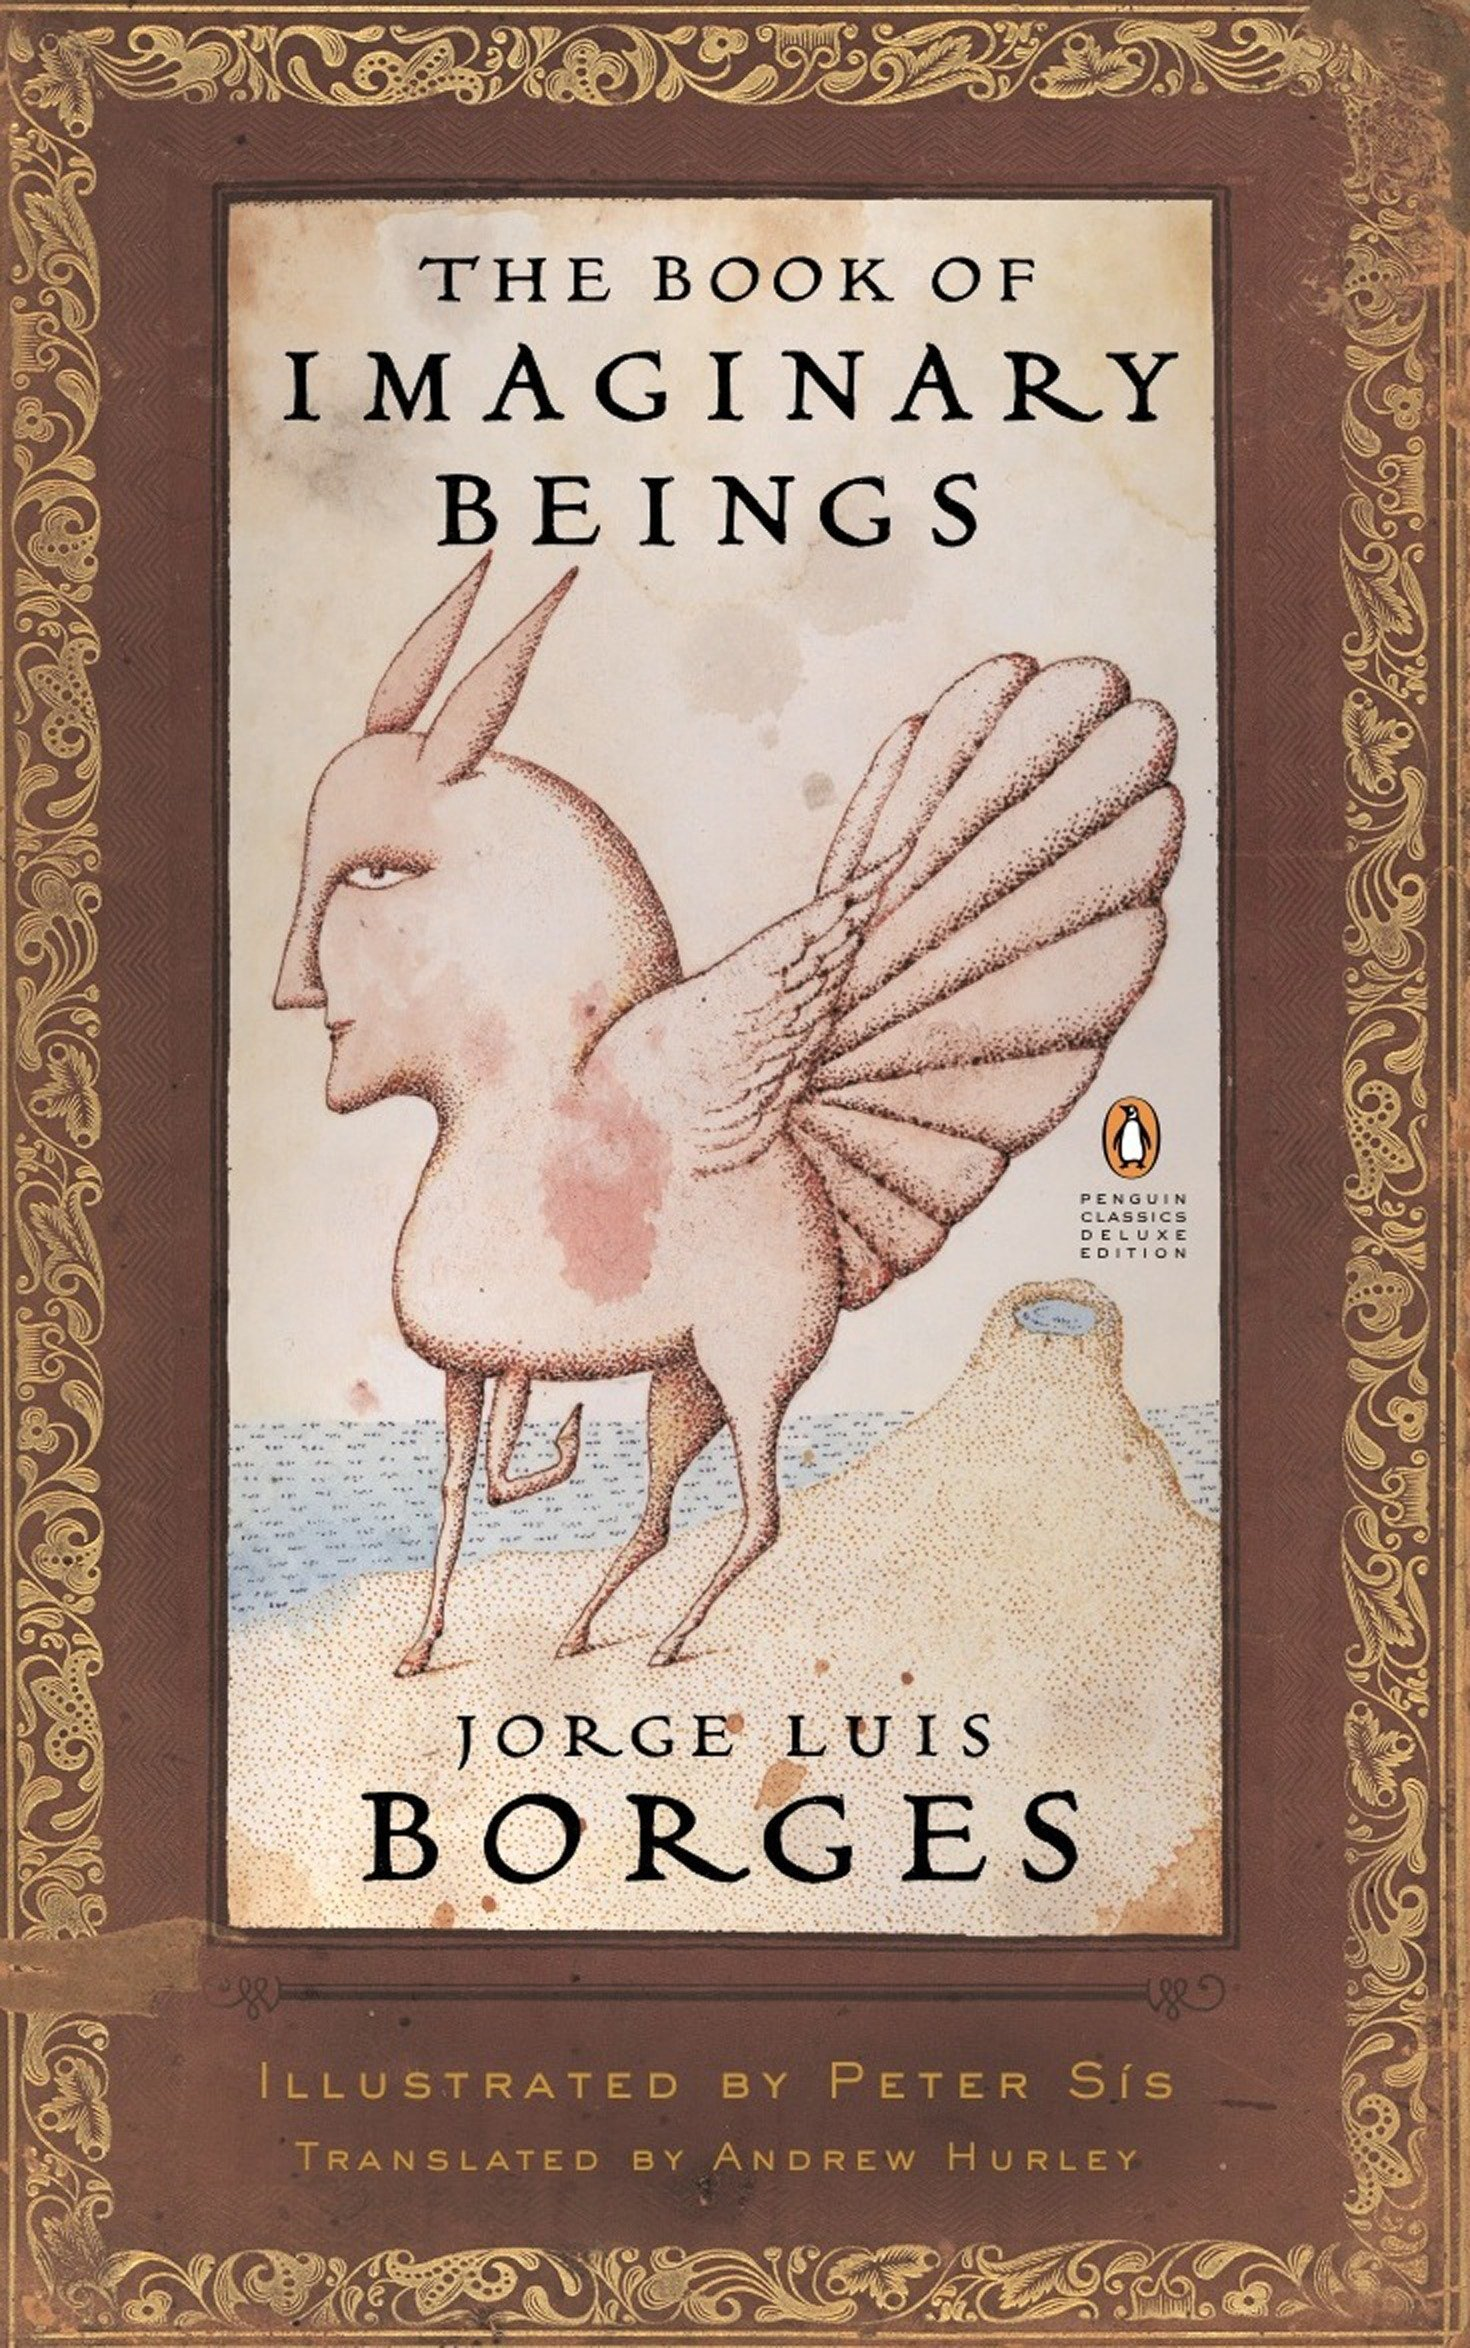 The Book of Imaginary Beings (Penguin Classics Deluxe Edition) Paperback – Deckle Edge, September 26, 2006 Jorge Luis Borges Peter Sis Andrew Hurley 0143039938